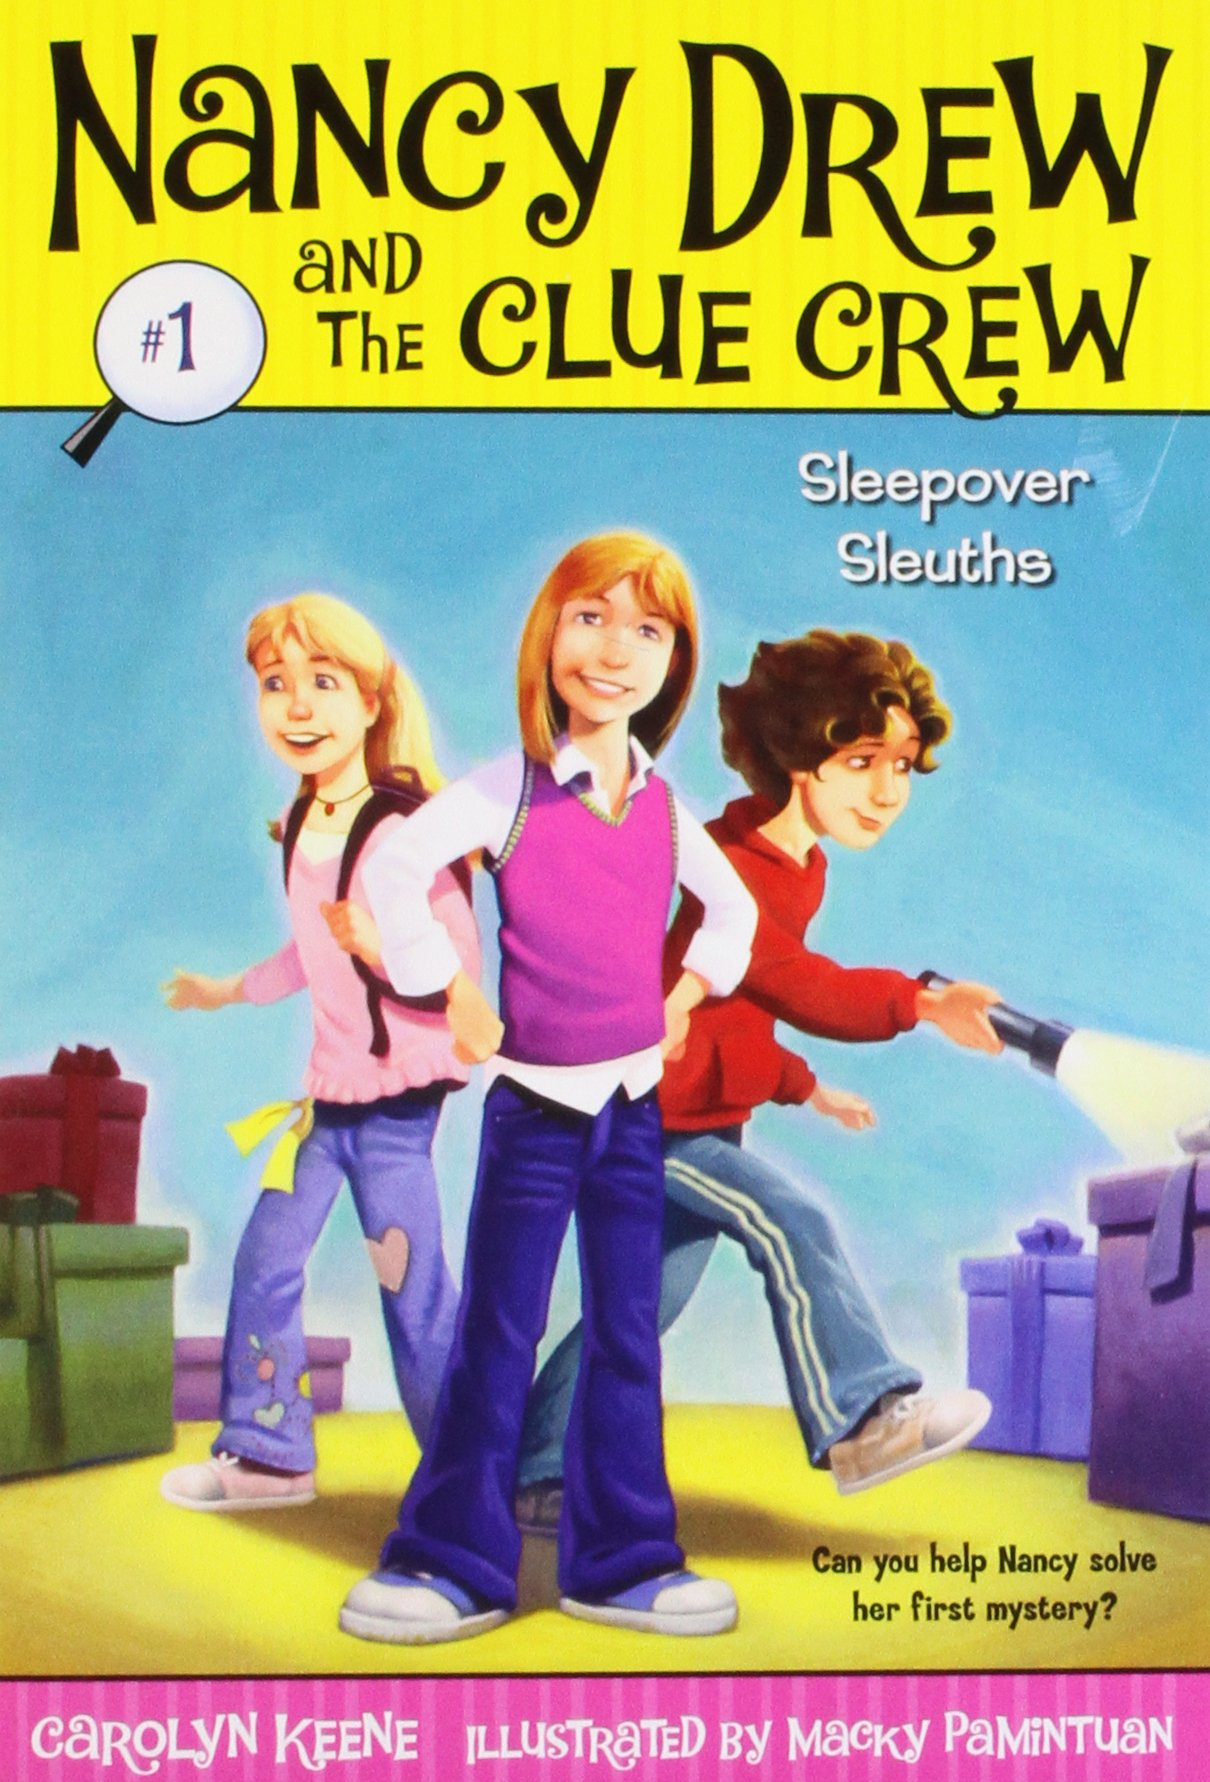 Download Sleepover Sleuths (Nancy Drew and the Clue Crew #1) pdf